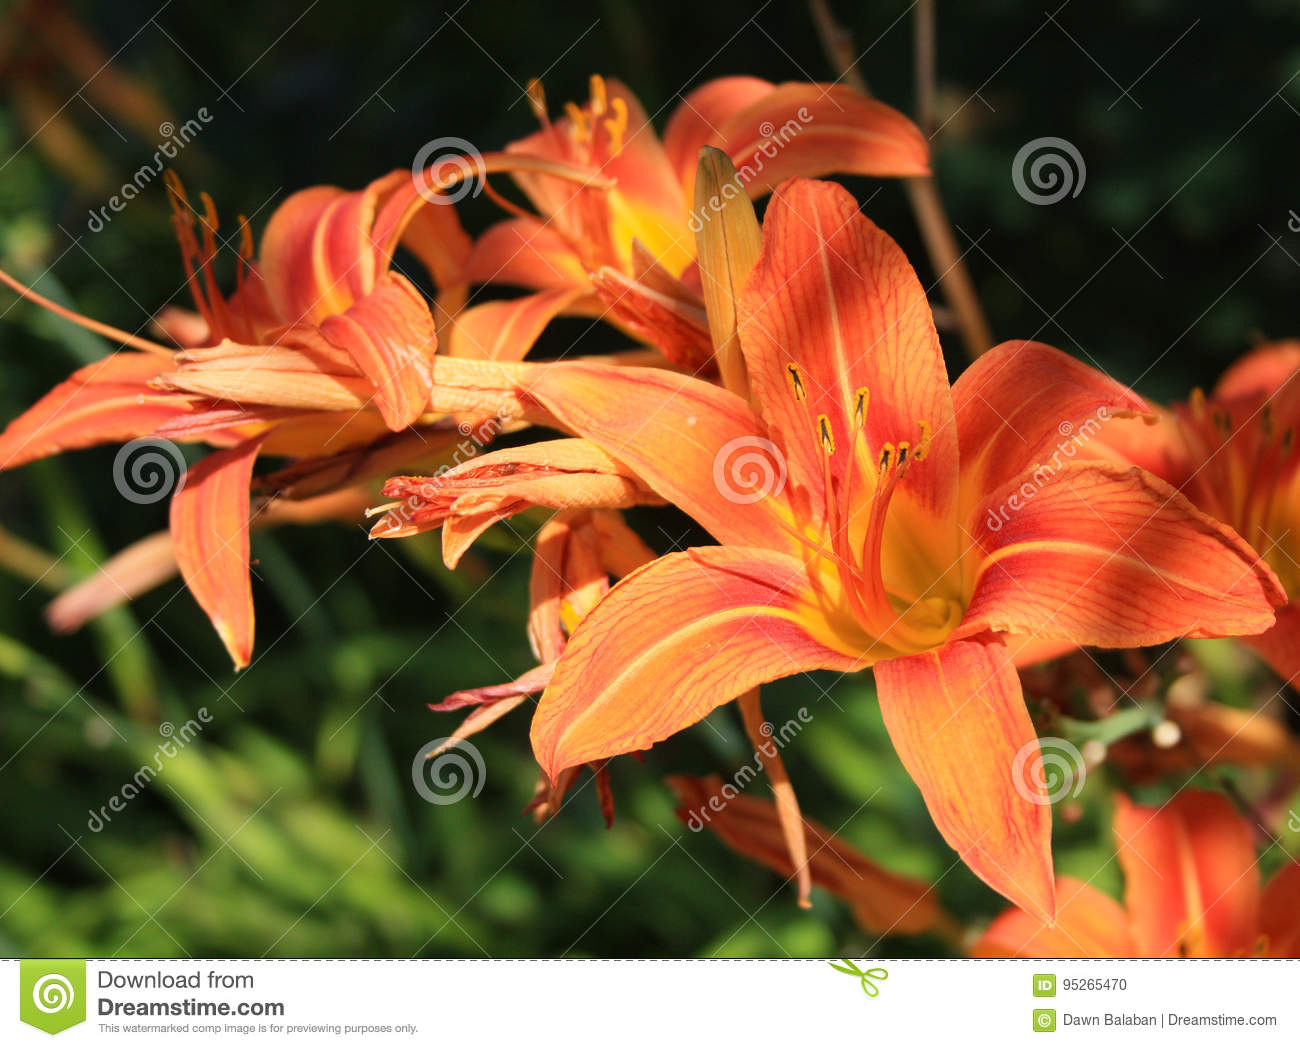 Orange tiger lilies flowers close up stock photo image of orange tiger lilies flowers close up izmirmasajfo Images